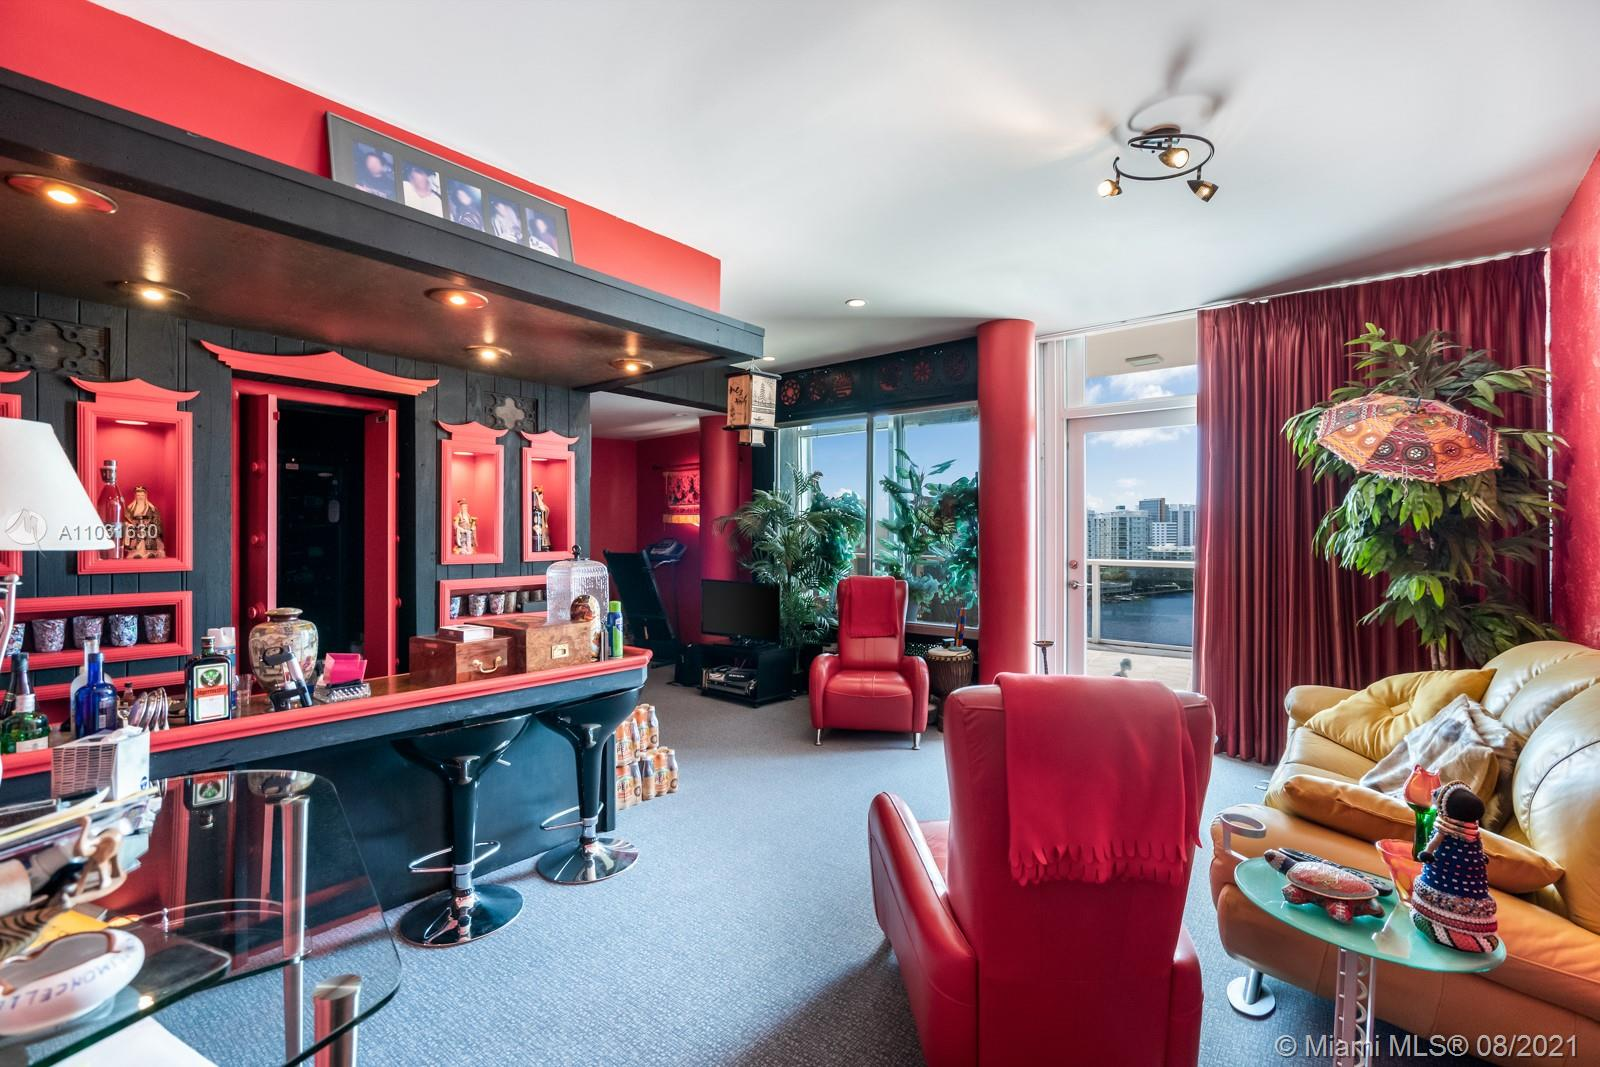 Marvel at the spectacular views of the Intracoastal, Atlantic Ocean, and Miami skyline from this beautiful 3 br, 2.5ba penthouse located in Normandy Isle. Living areas feature custom marble flooring. Master bed includes his & her walk-in closets, guest bed has full ensuite, while third bed boasts sweeping oceans views. Spacious balcony provides plenty of room to lounge and enjoy the sunrise. The full amenity condo provides an Olympic size heated pool, 24-hour valet, gym overlooking the water, a marina & more.